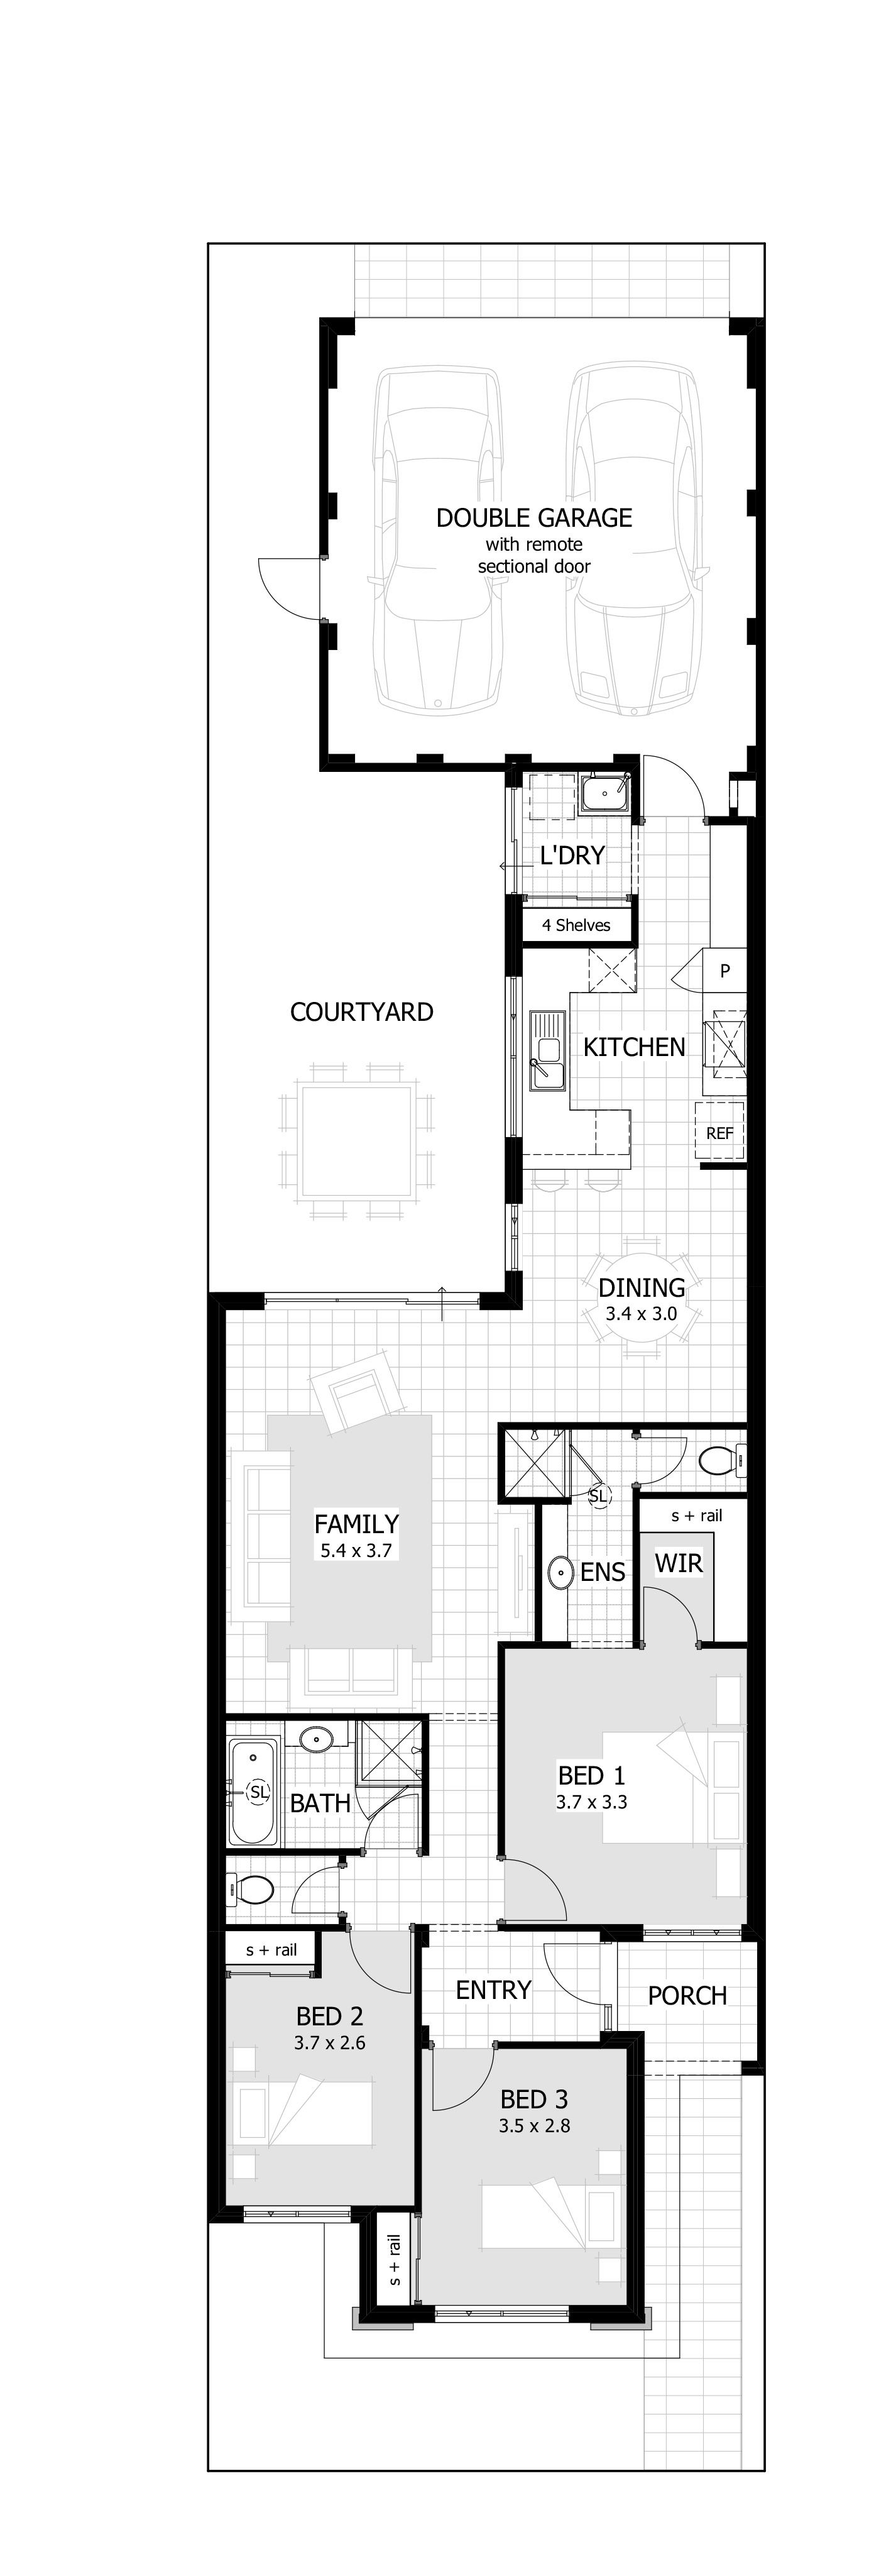 Ava Floor Plan 7 5m Design Perfect For The Land Size This Has Everything I Want Narrow House Designs Narrow House Plans Narrow Lot House Plans